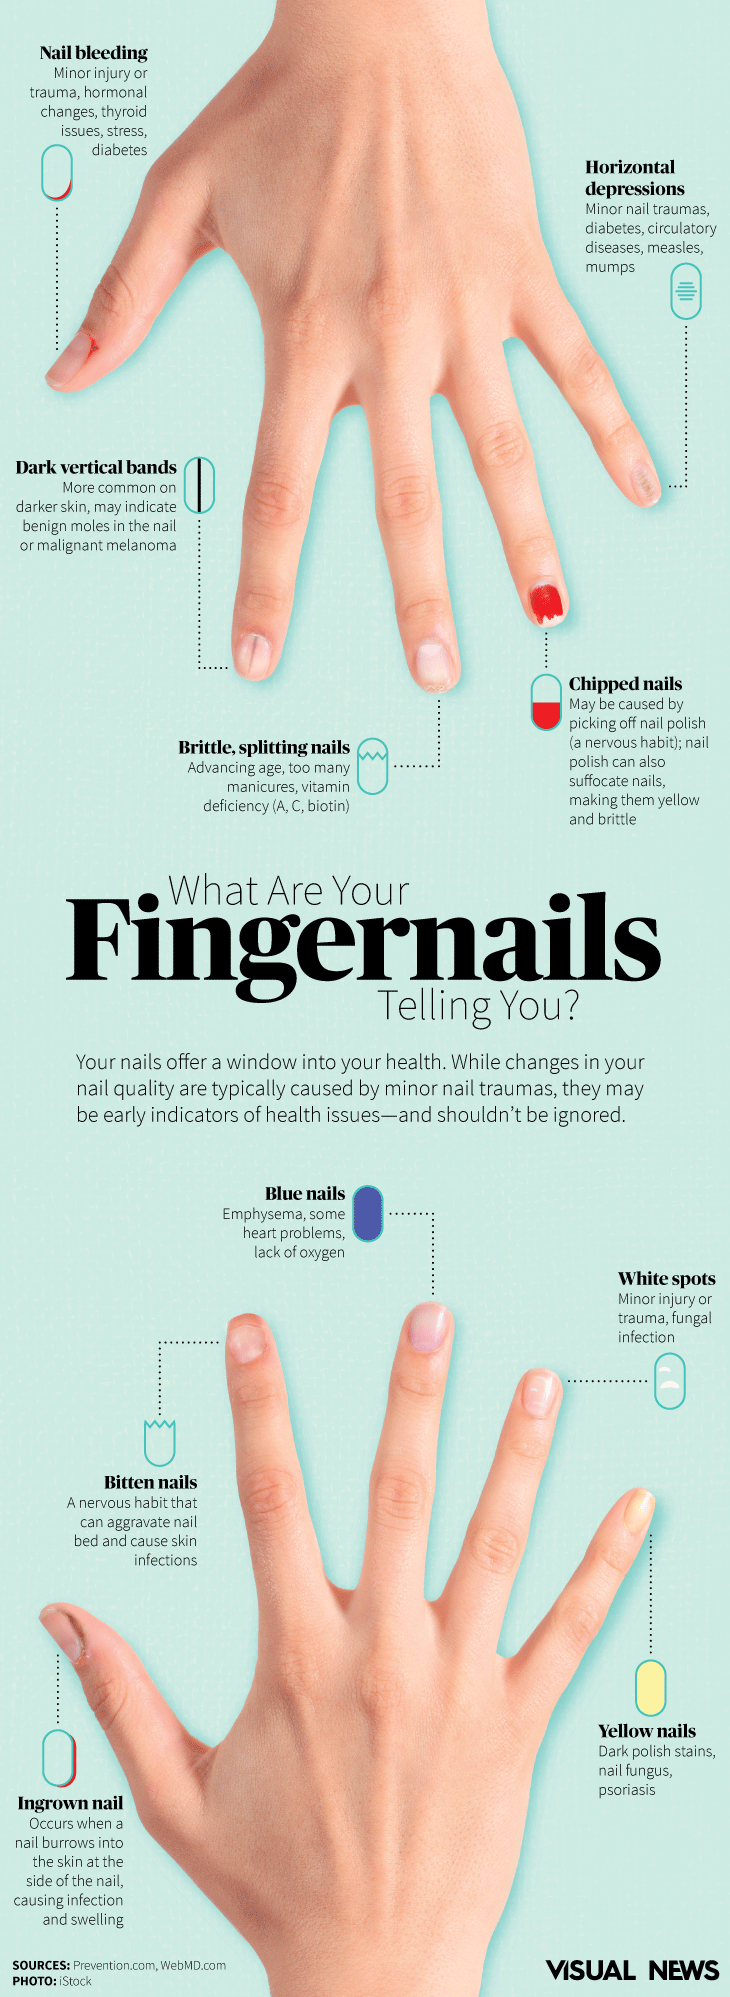 Fingernails Provide Clues To General Health Photo Of Beau S Lines Terry Nails And Yellow Nail Syndrome Pinterest